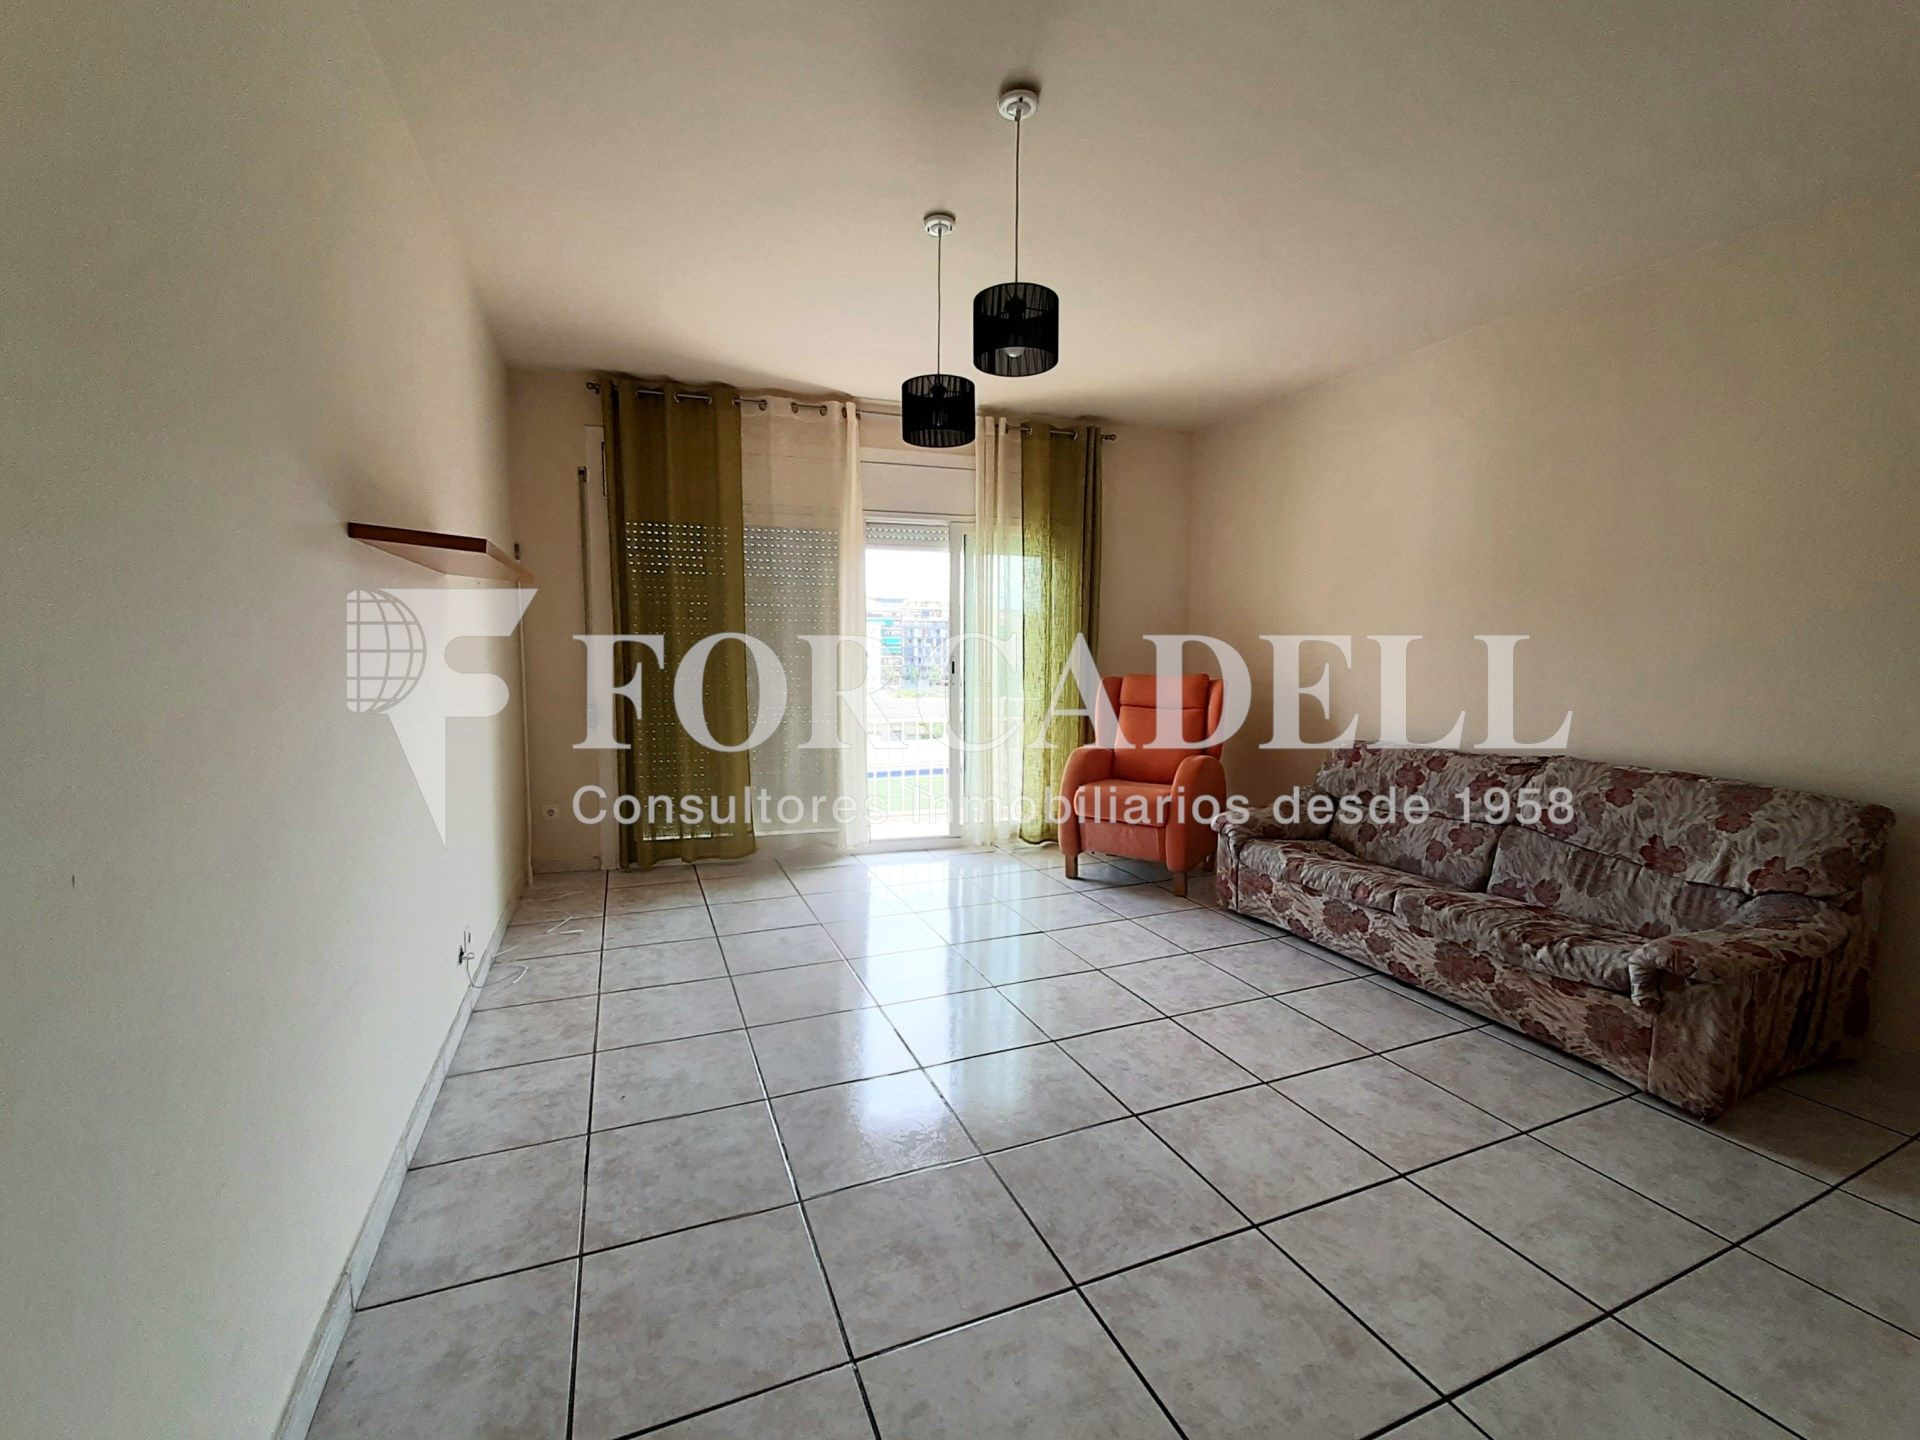 Rent Flat in Joan Prim. Piso con 4 habitaciones y ascensor